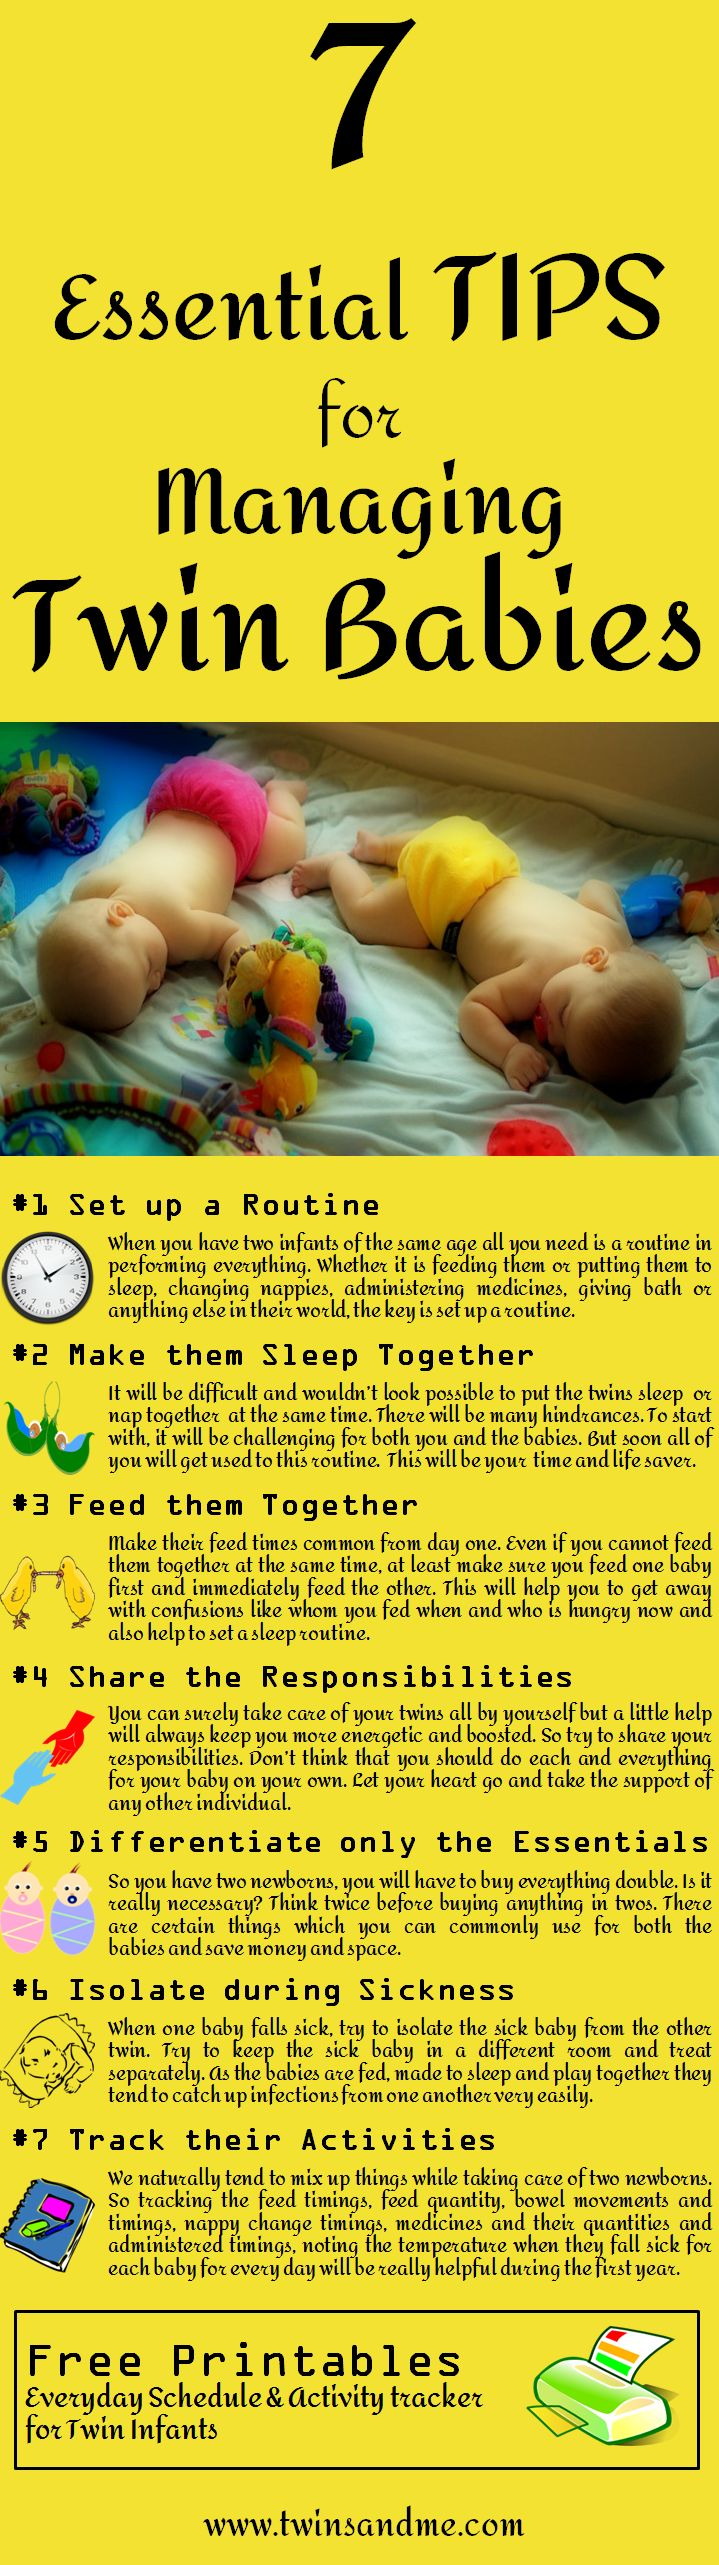 Feeling exhausted about bringing up your twin infants? Need some ideas or tricks to make your life easier. Here are a few tips for managing twin babies!